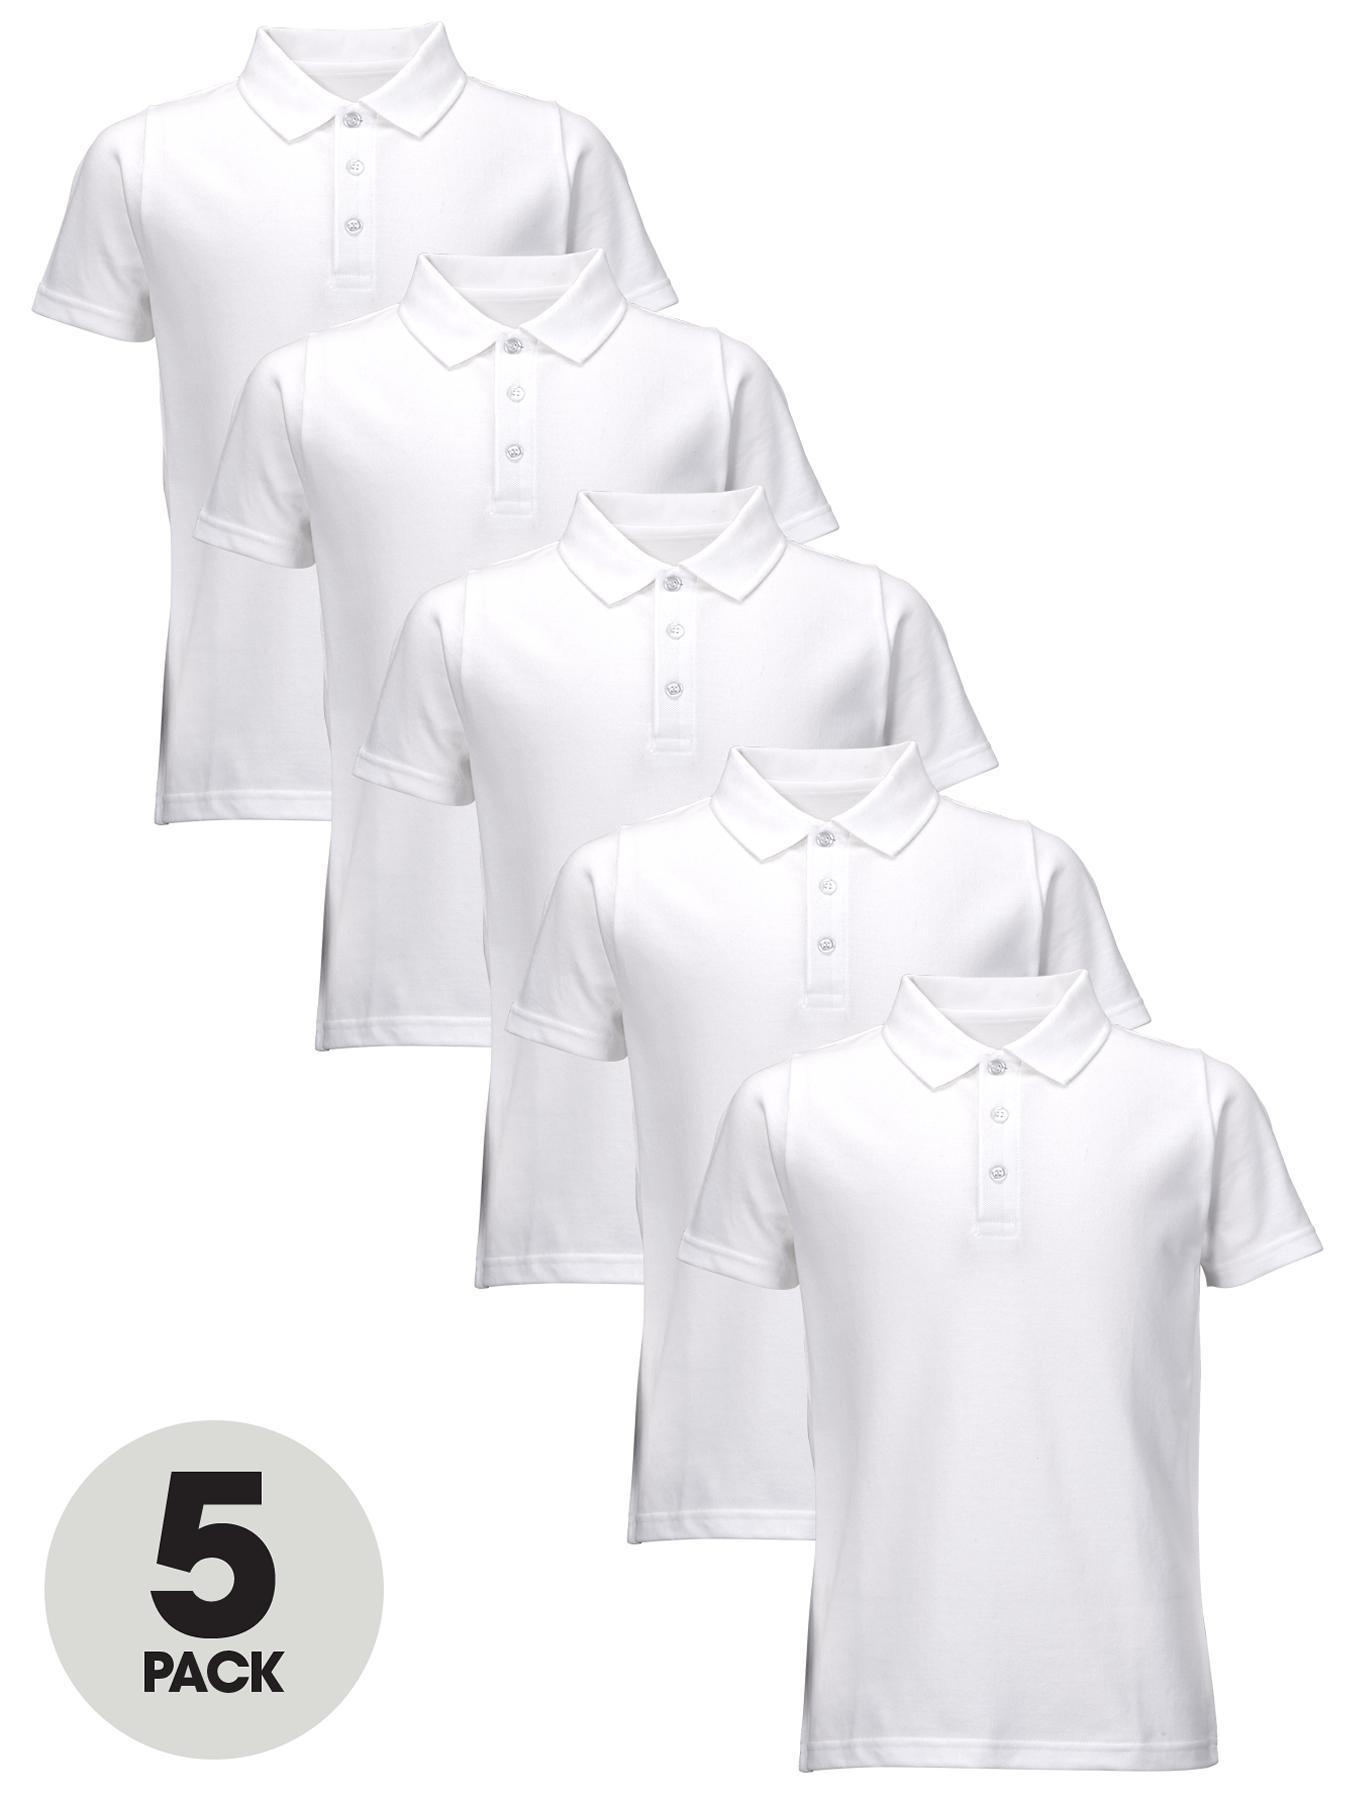 Boys School Polo Shirts (5 Pack), Blue,Red,White at Littlewoods